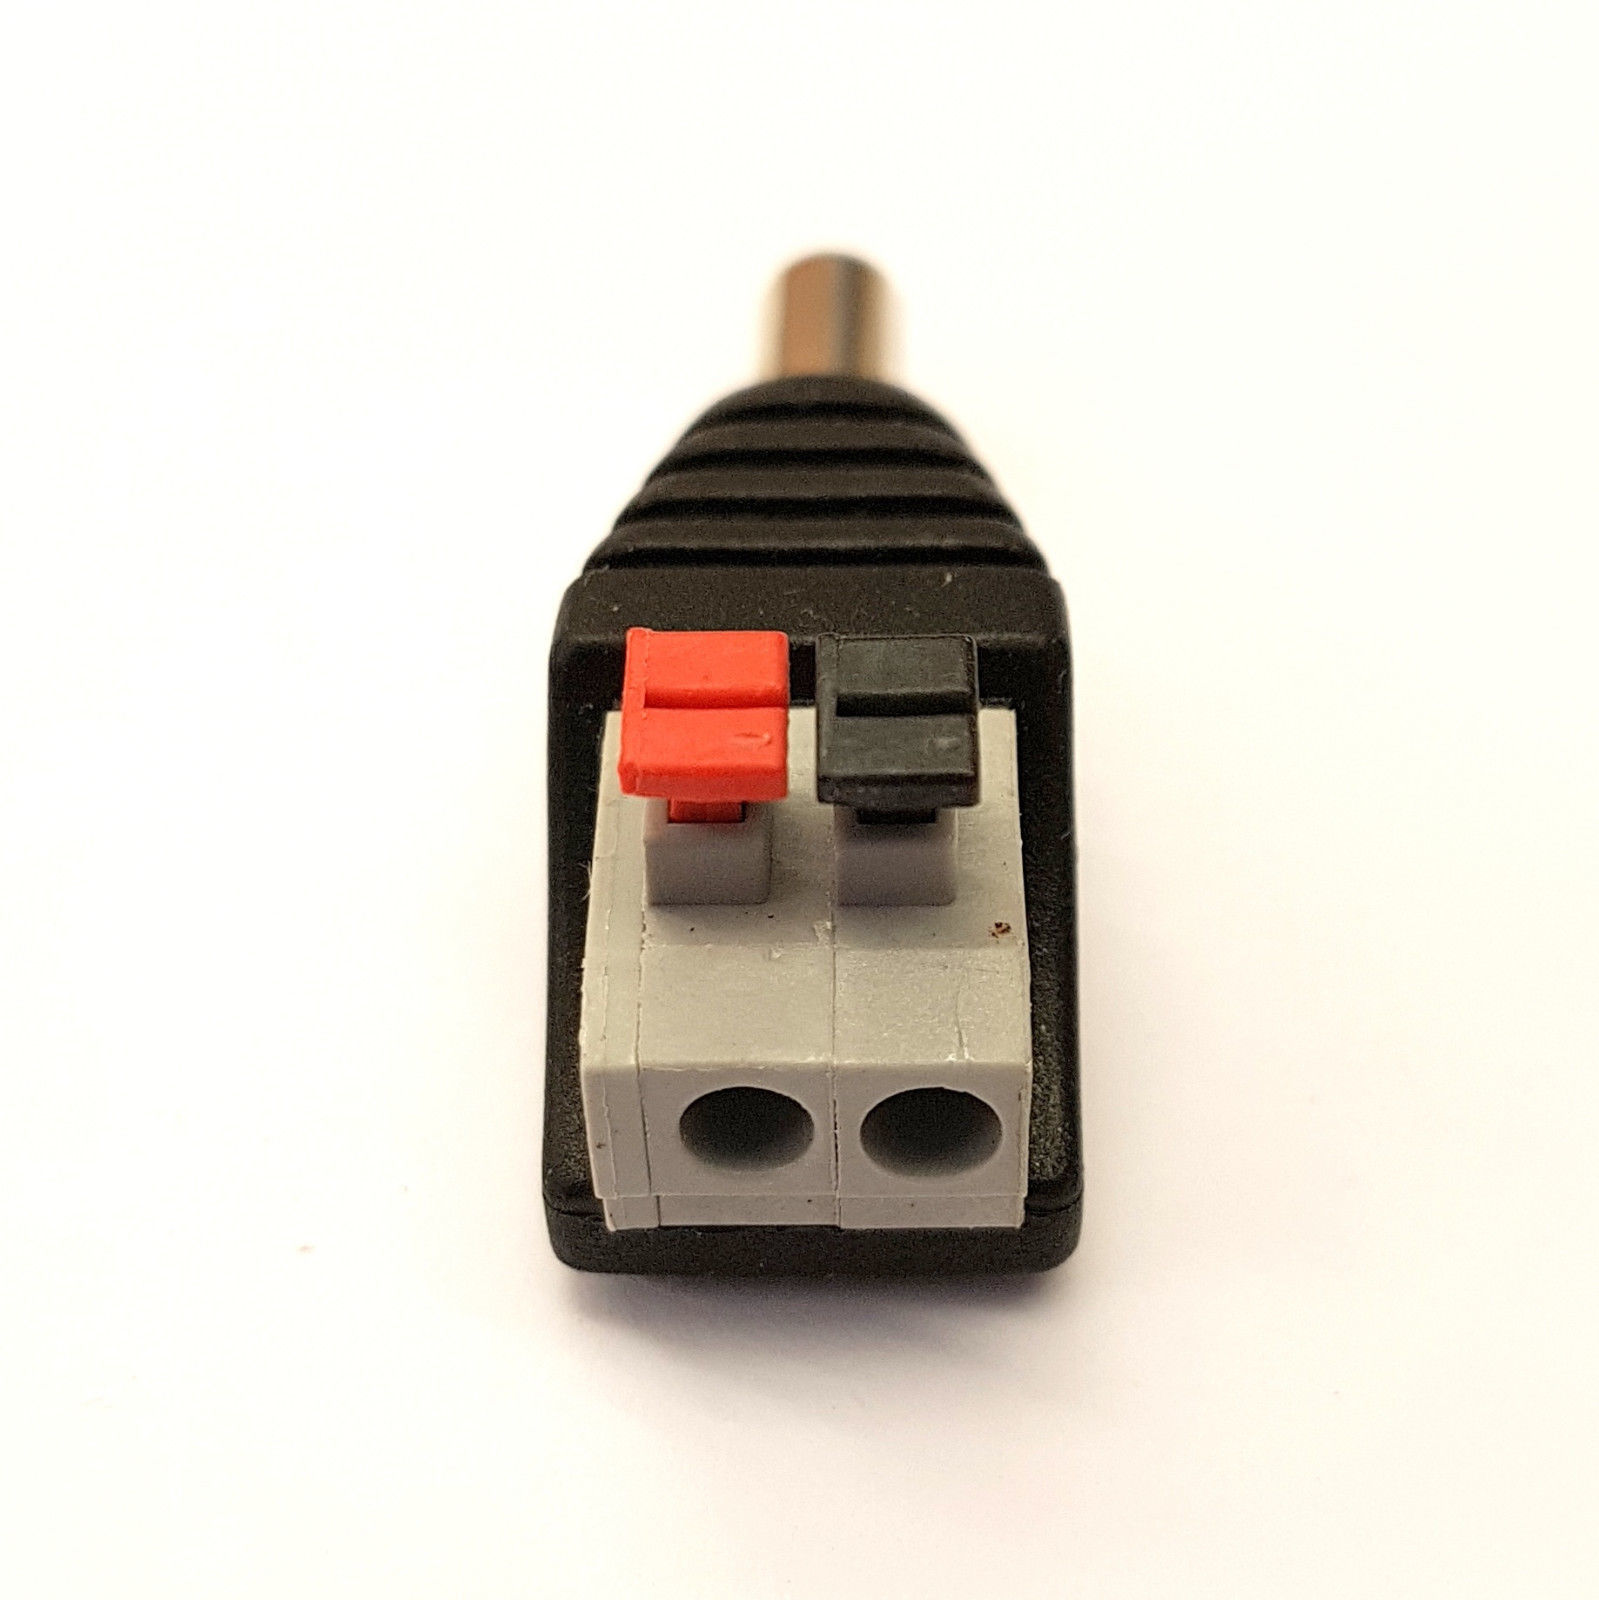 DC POWER CABLE 5.5mm x 2.1mm STRAIGHT to RIGHT ANGLE 90° PATCH JUMP LEAD